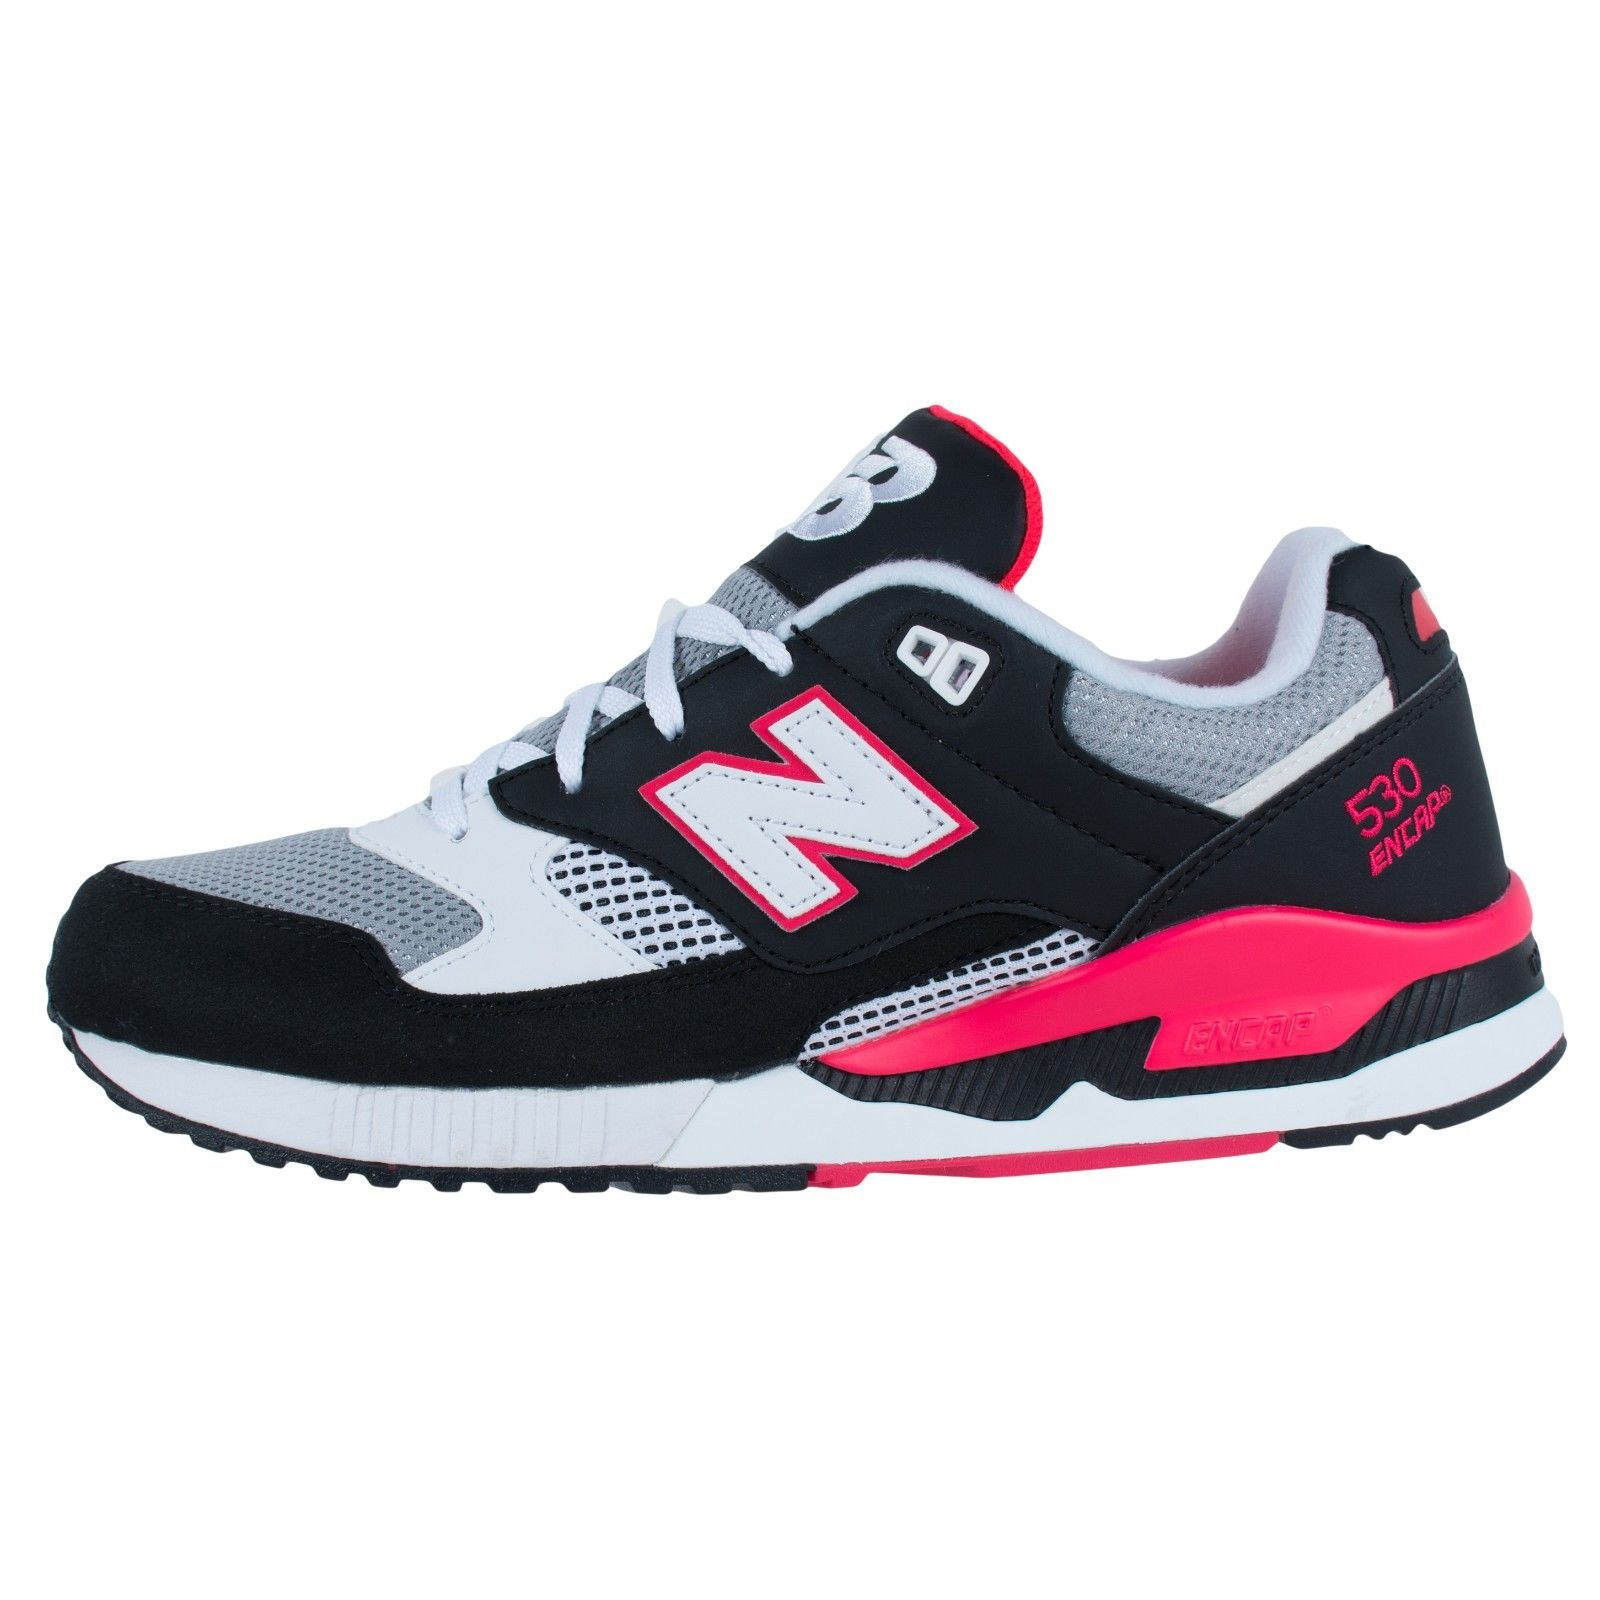 NEW BALANCE 530 90S RUNNING SHOES BLACK GREY MAGMA PINK M530BGM